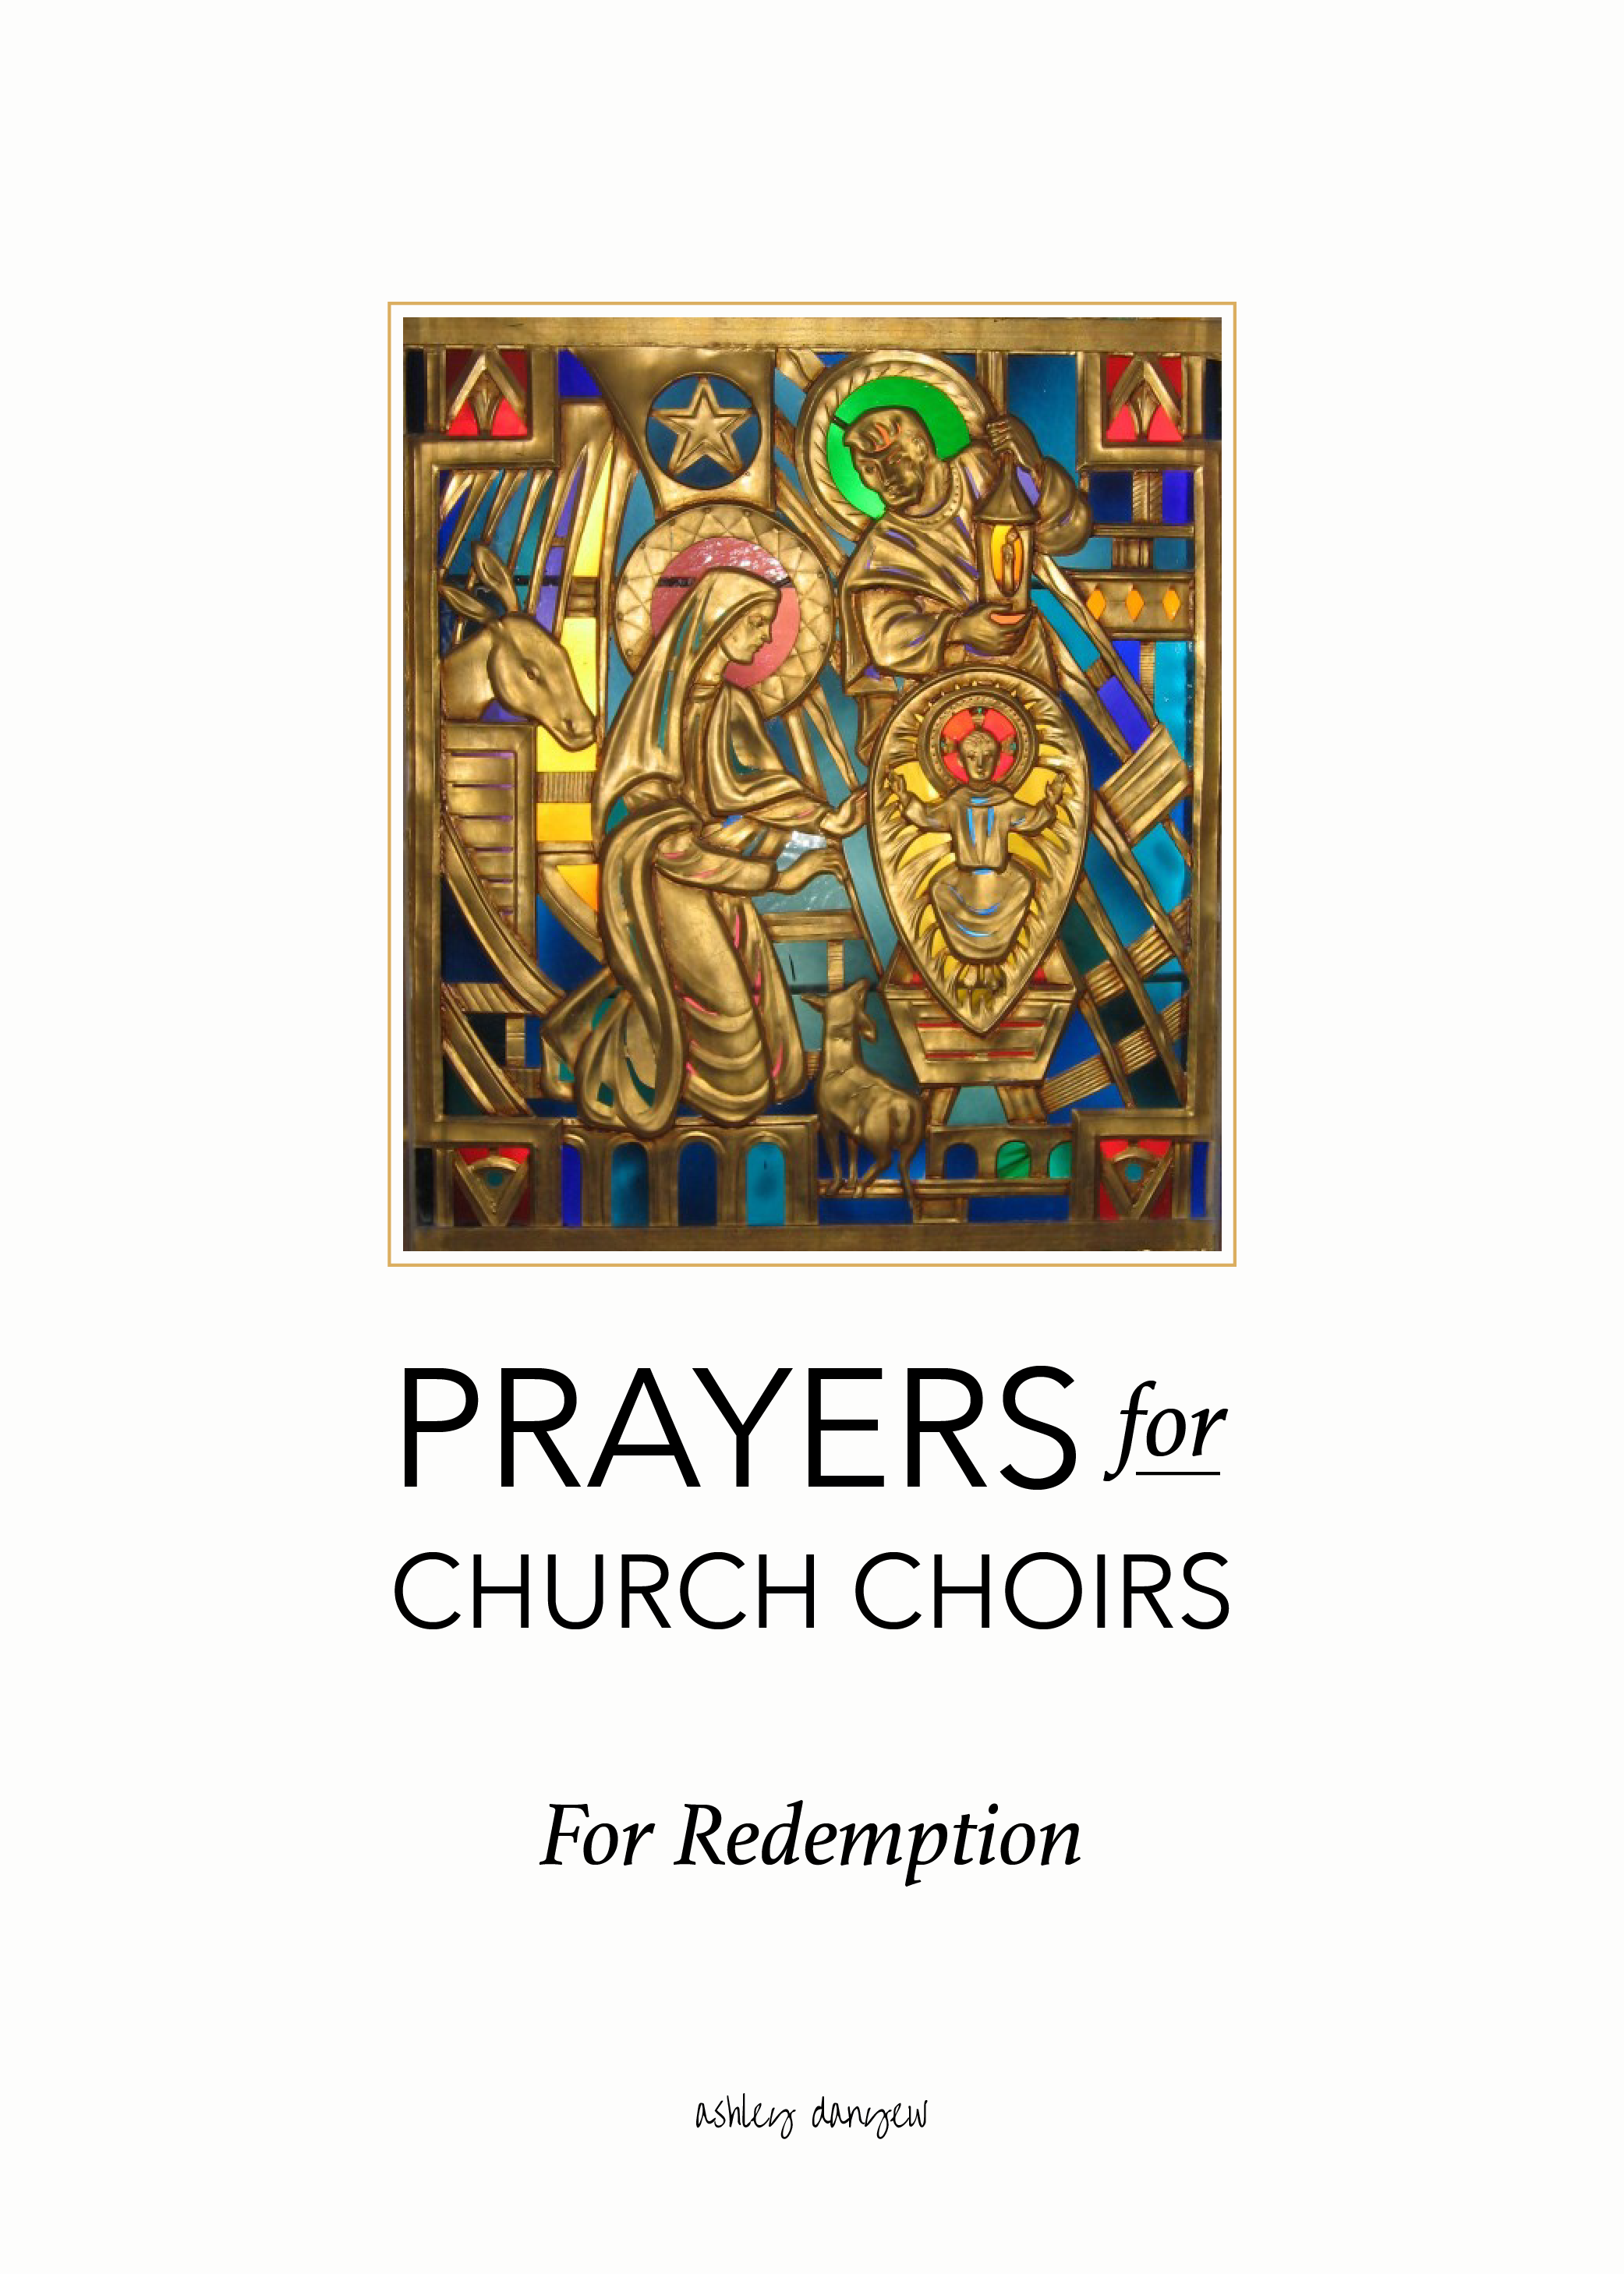 A devotion and prayer for church choirs about healing and redemption